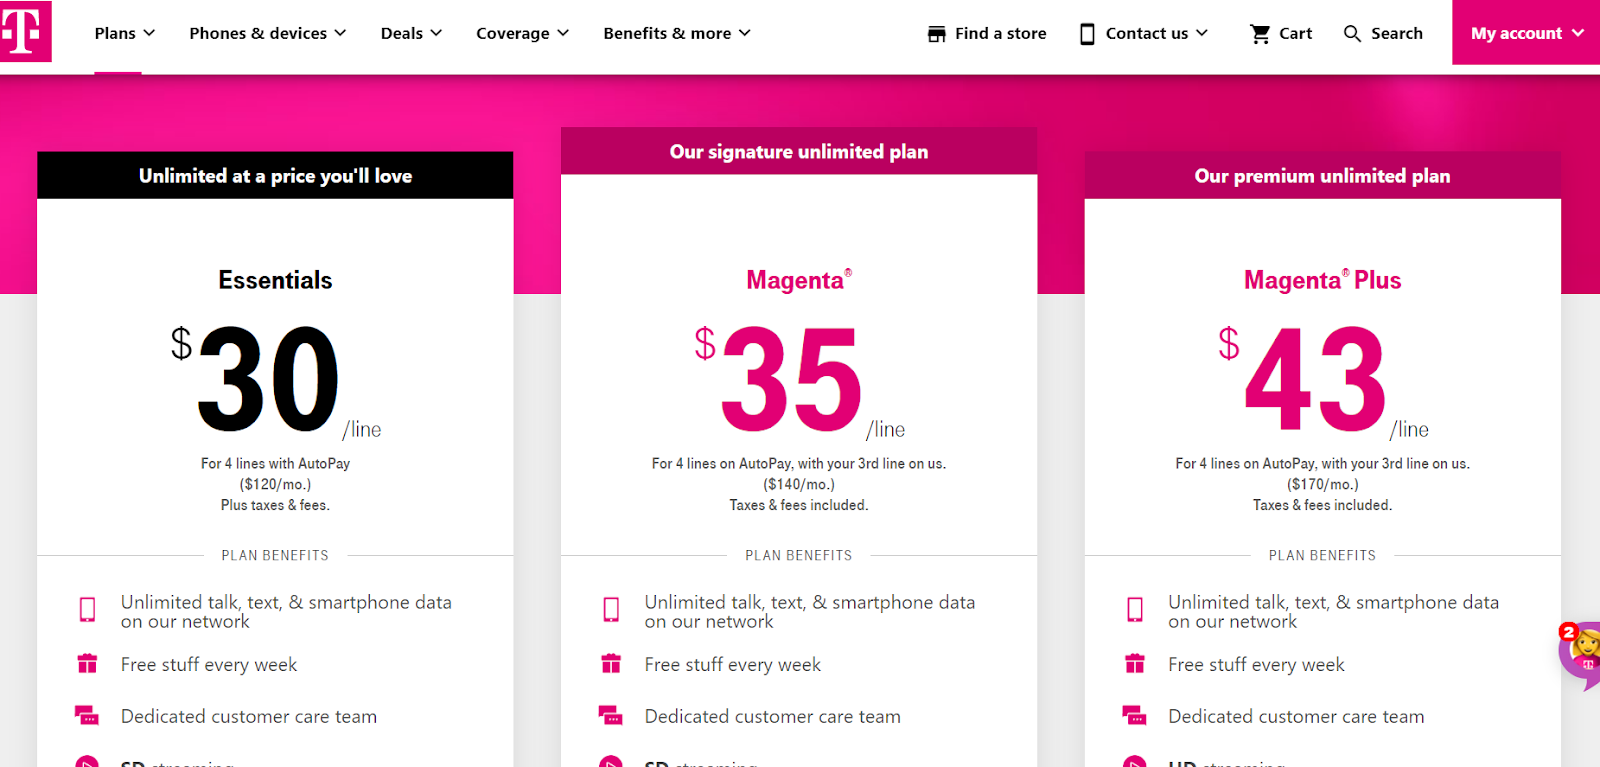 t+mobile+55+for+two+lines